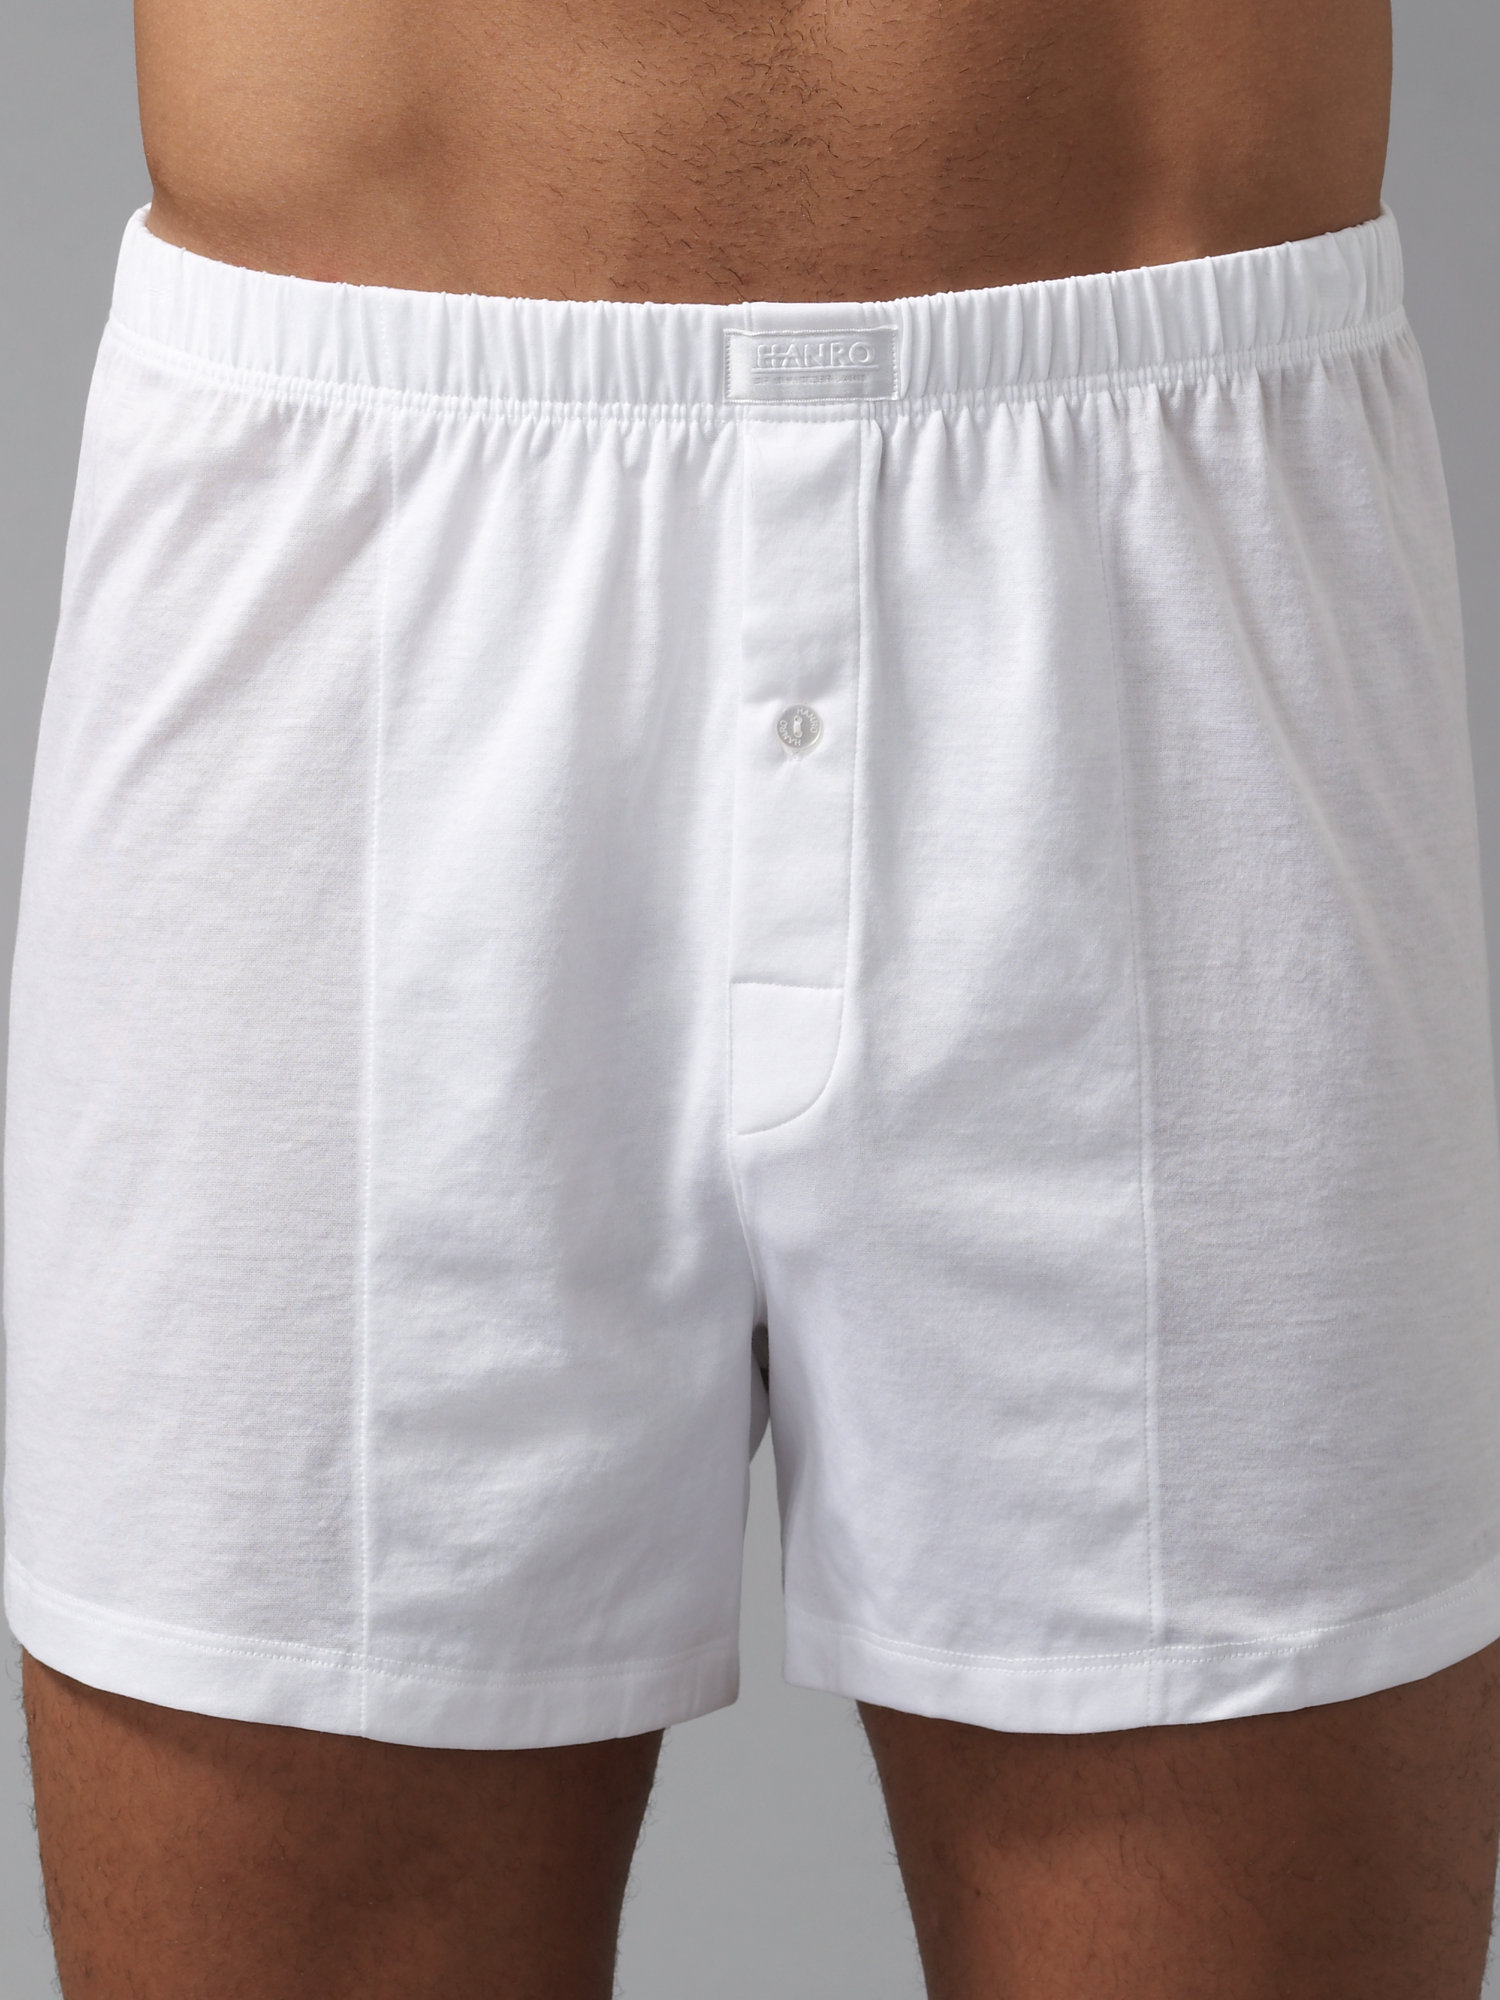 Lyst Hanro Cotton Jersey Boxers In White For Men